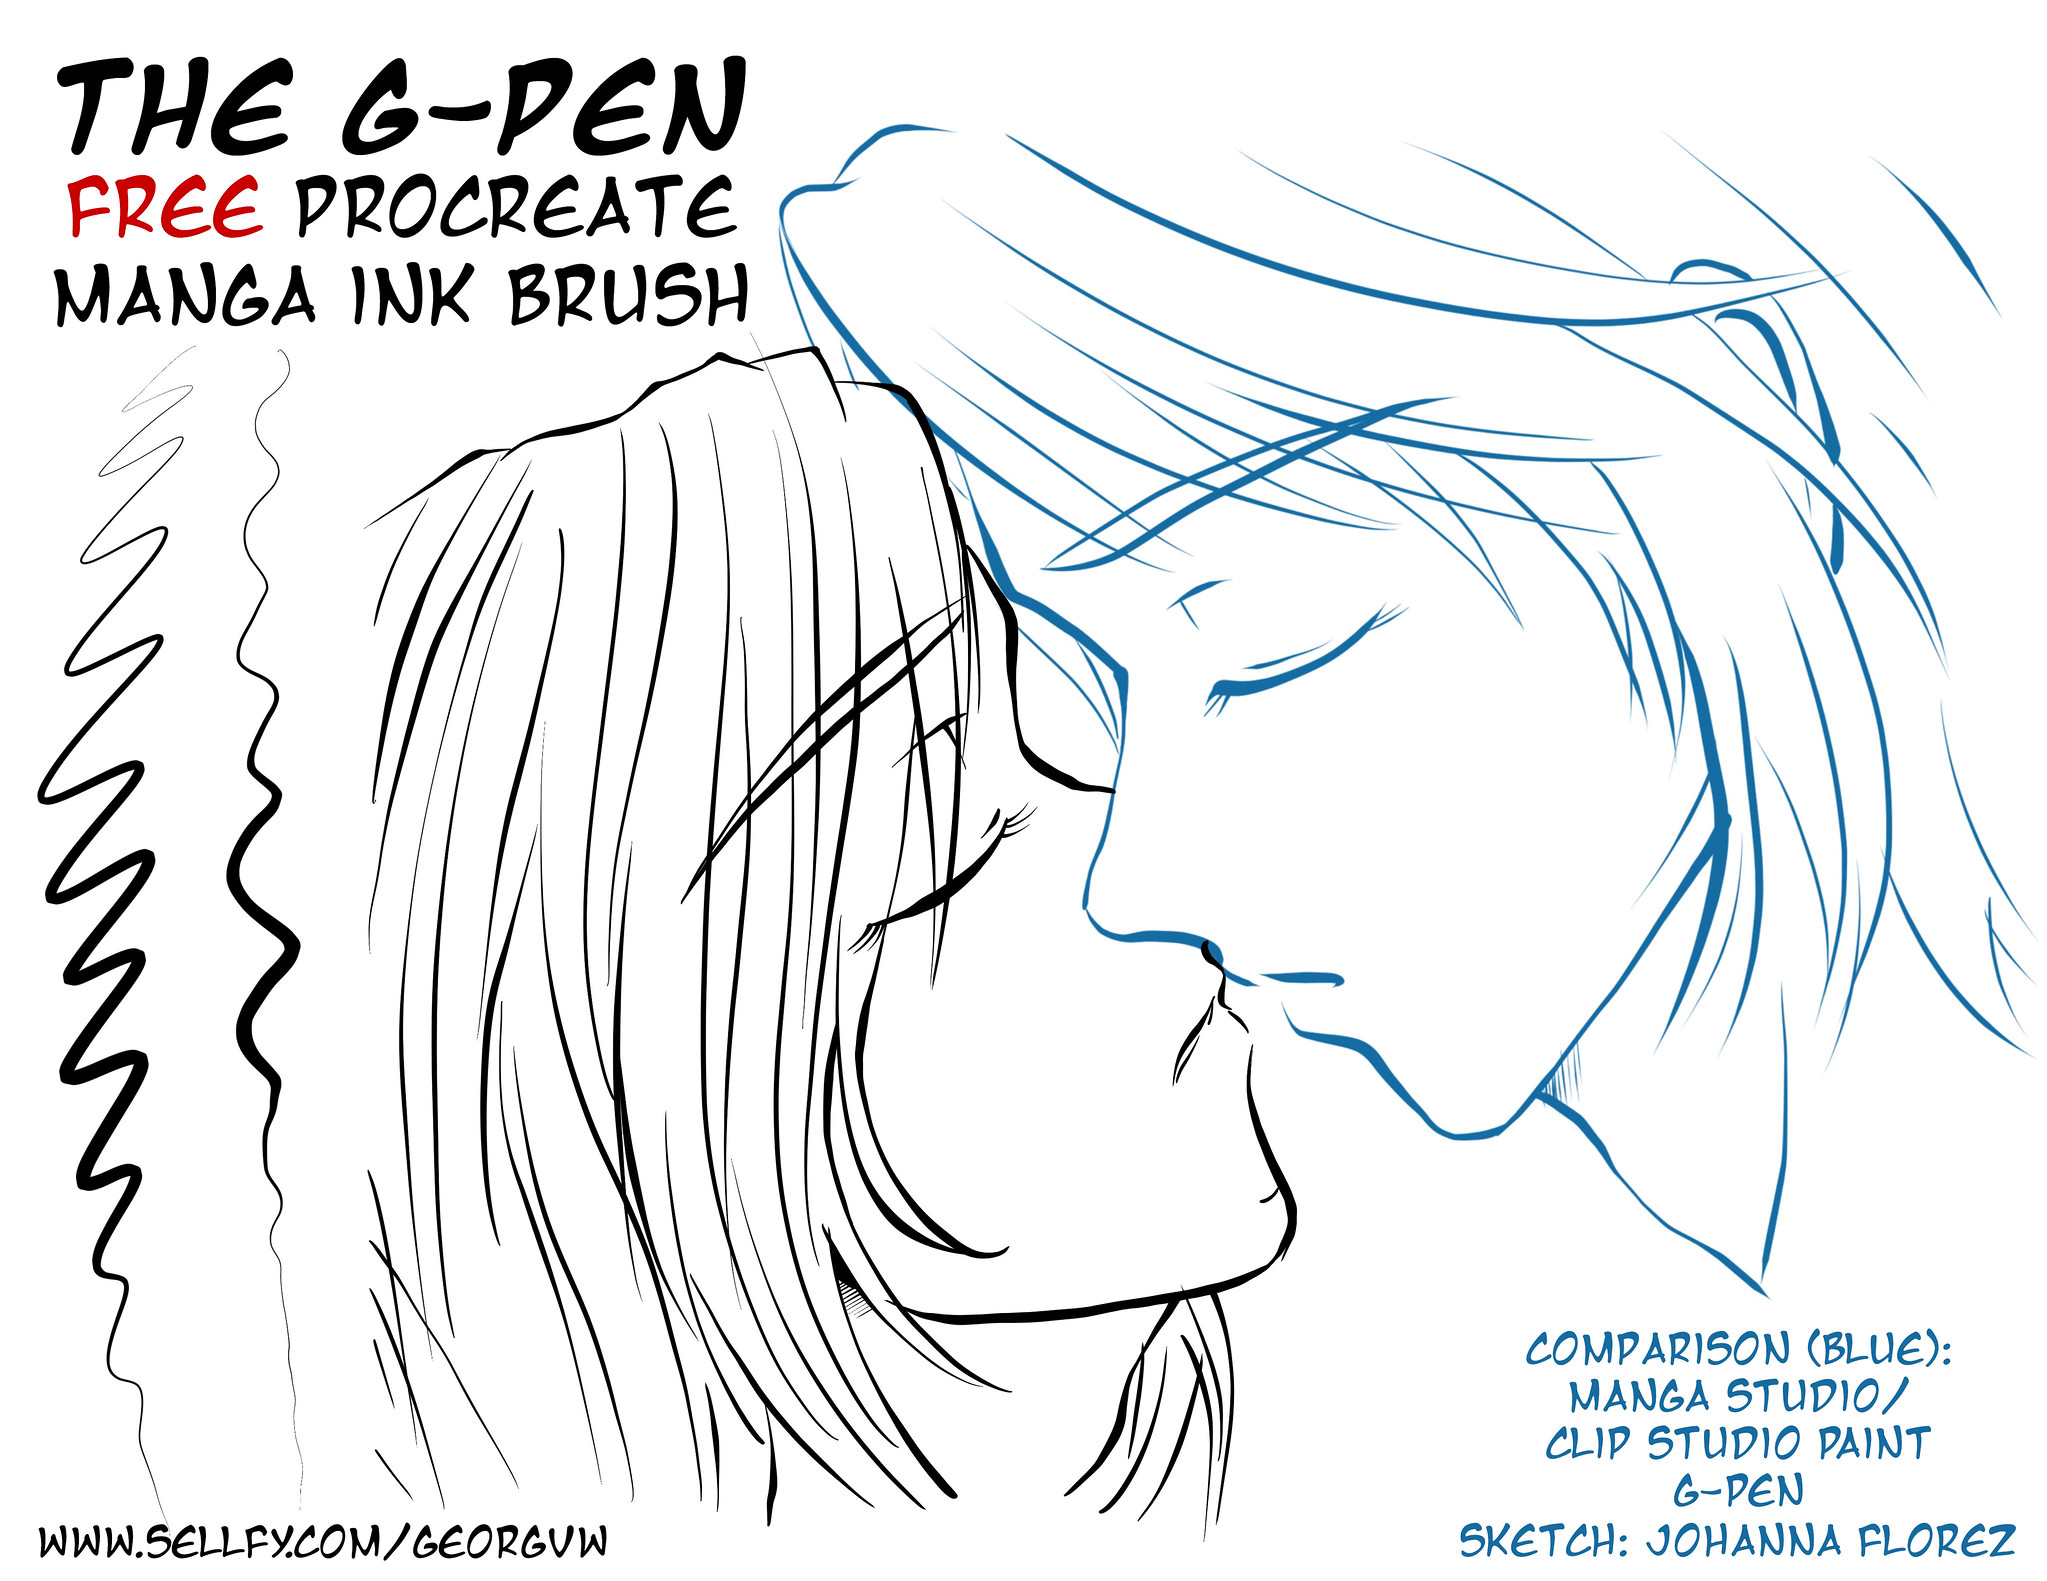 Georg's INK + PAINT Brushes NEW Nov 16